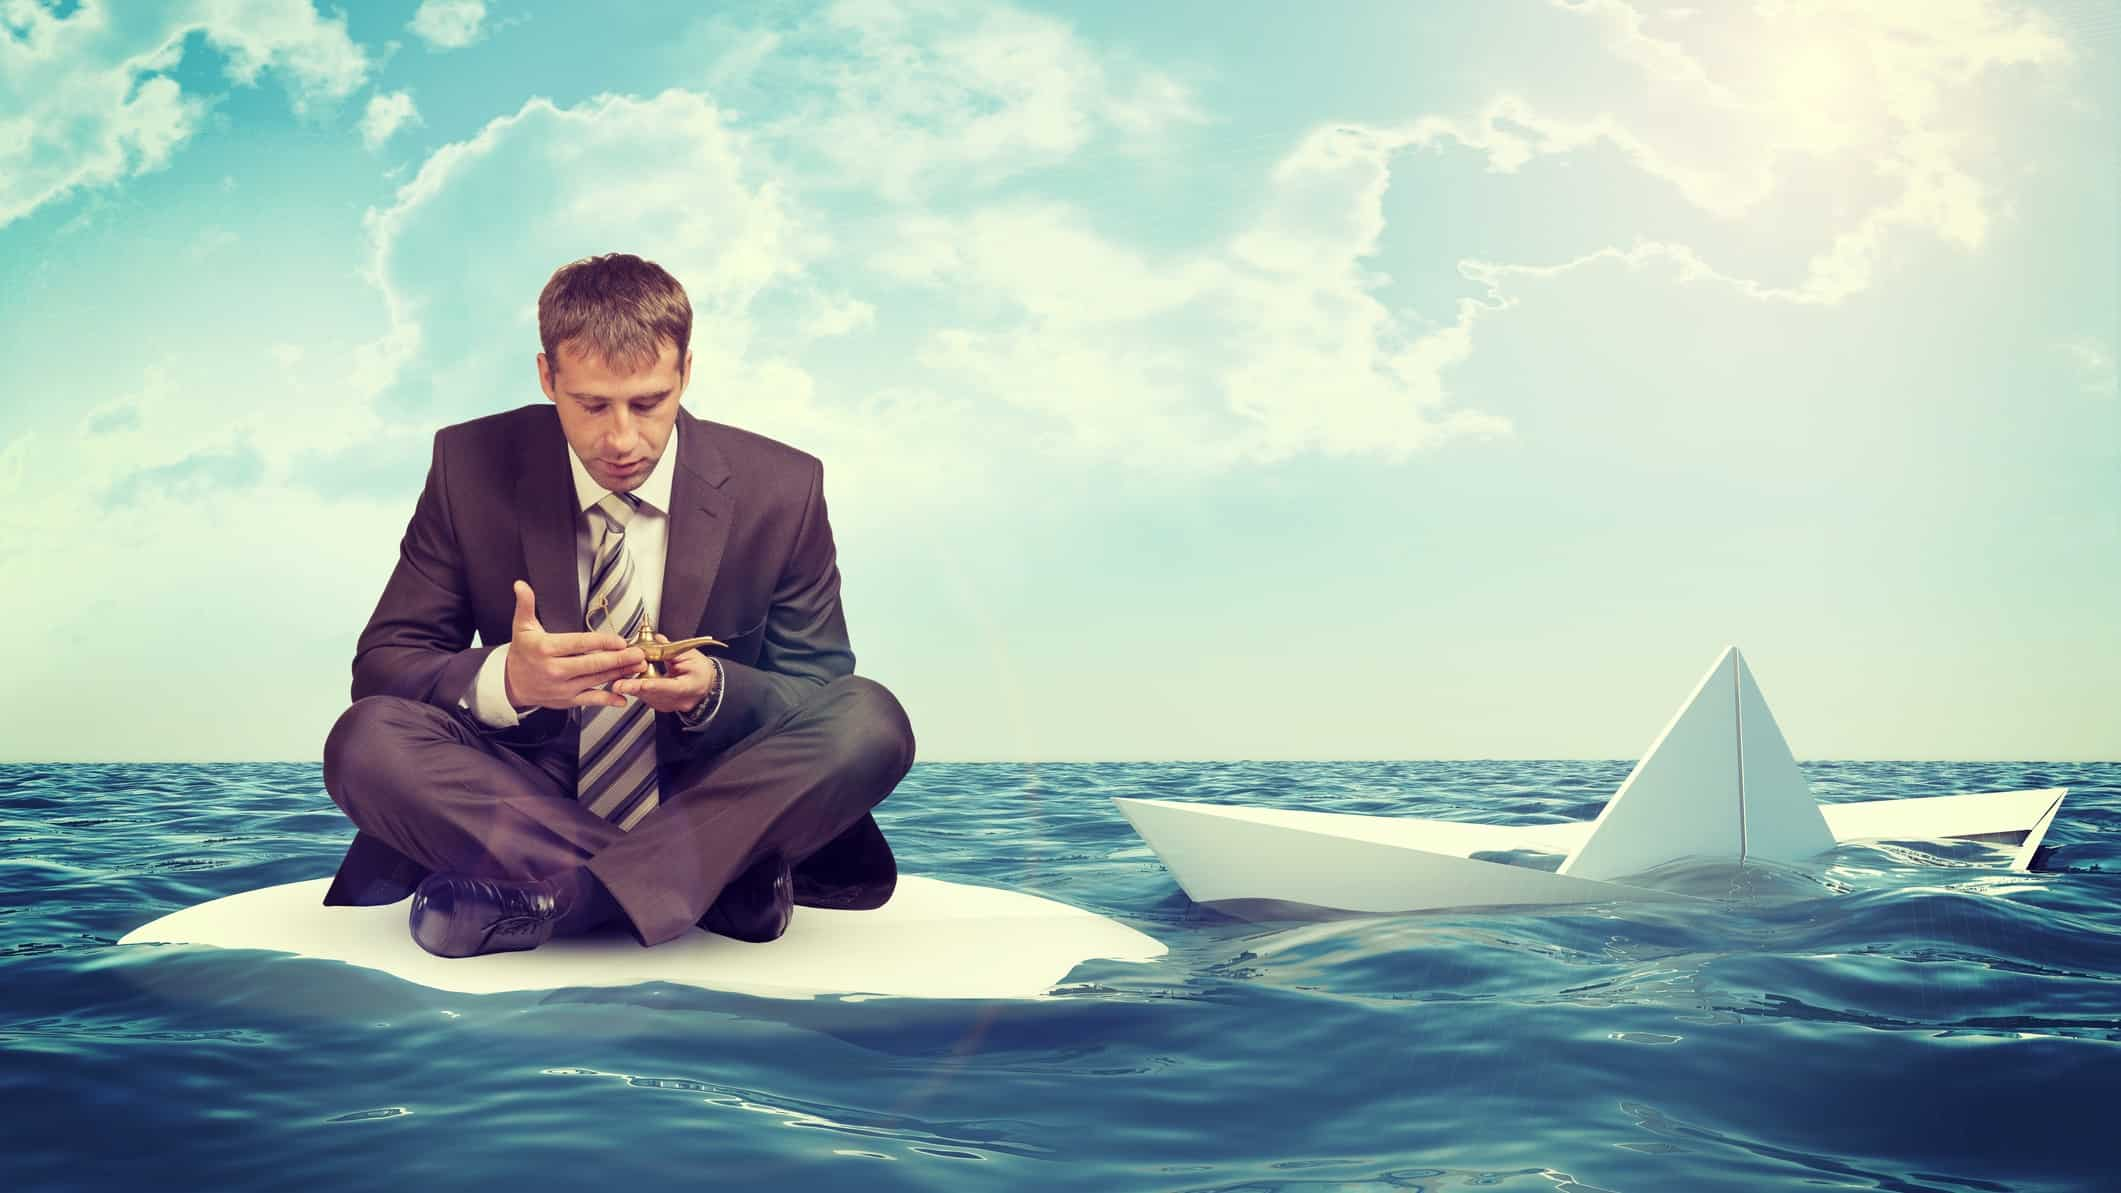 Man in business suit sits on sinking raft while looking at phone